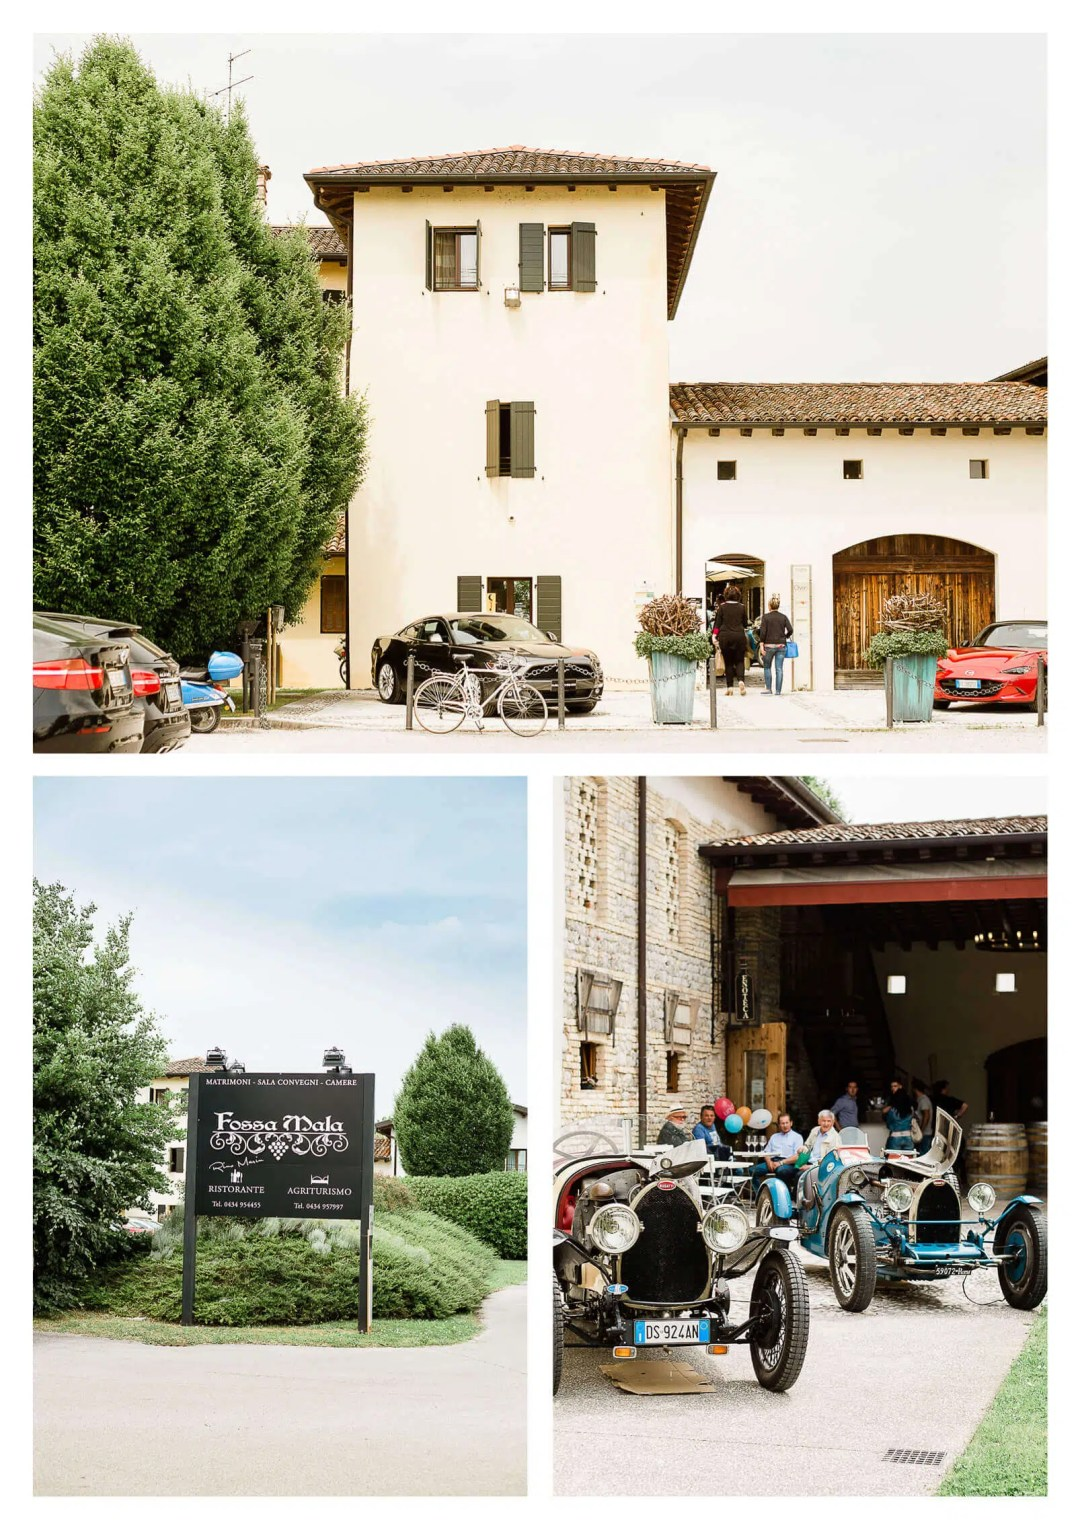 Fossa Mala vineyard wedding in Pordenone Italy | Destination wedding photographer